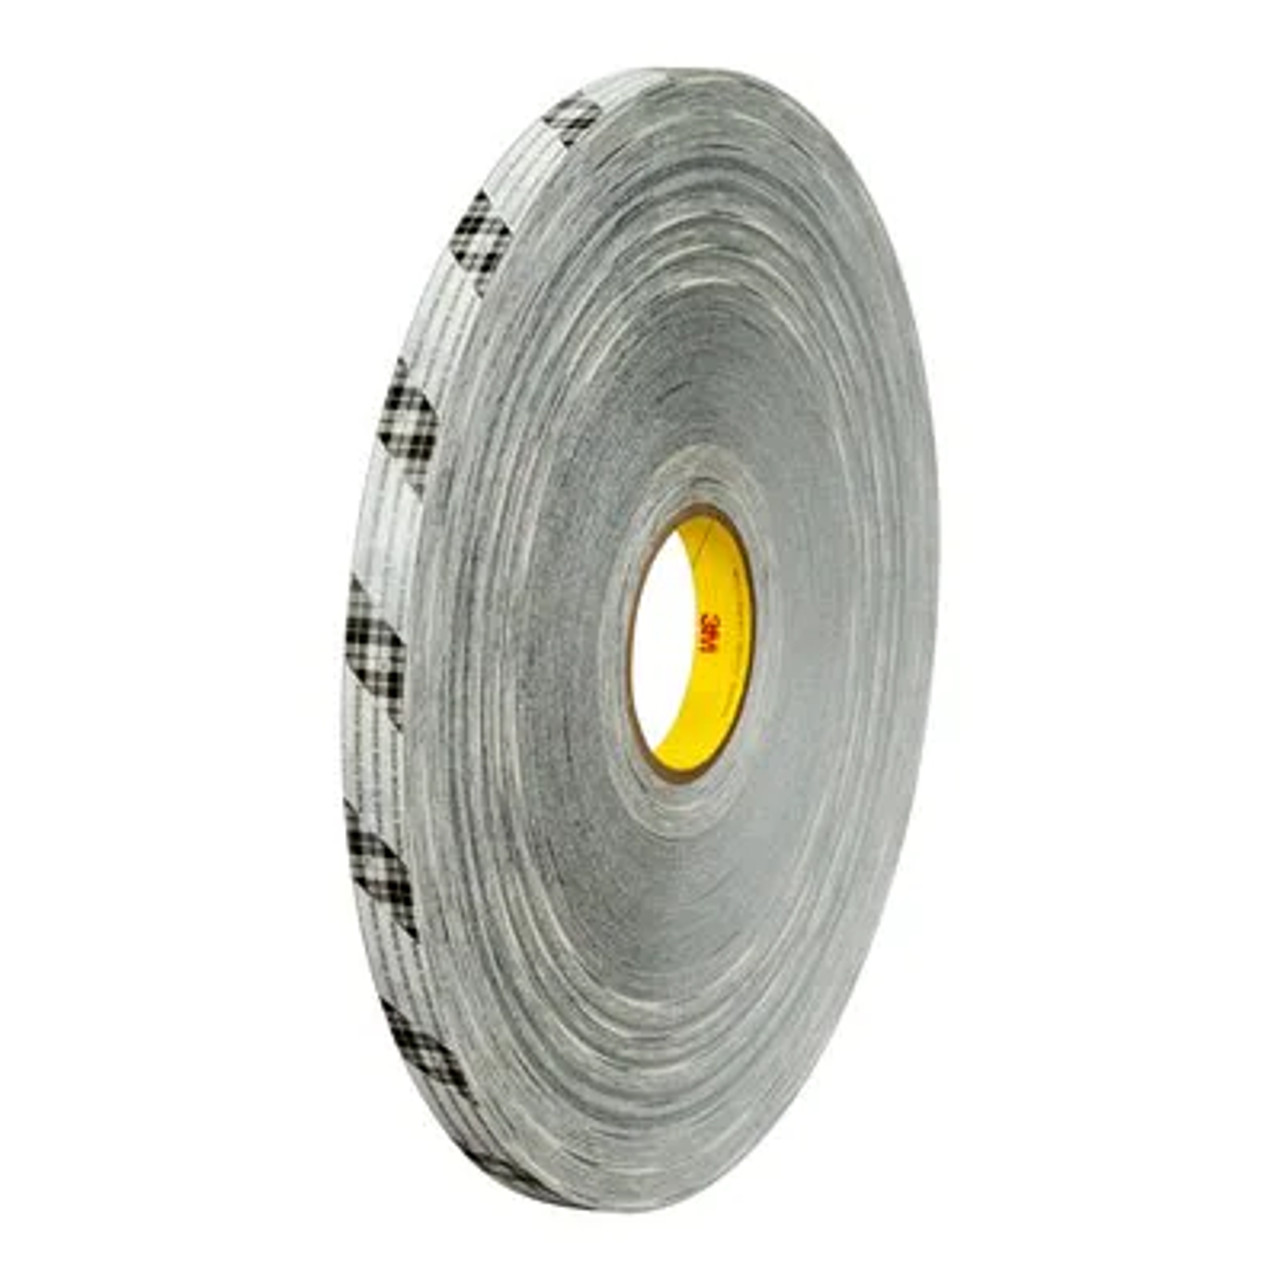 3M™ Double Coated Tape Extended Liner 9925XL, Off-white Translucent, 3/4 in x 750 yd, 2.5 mil